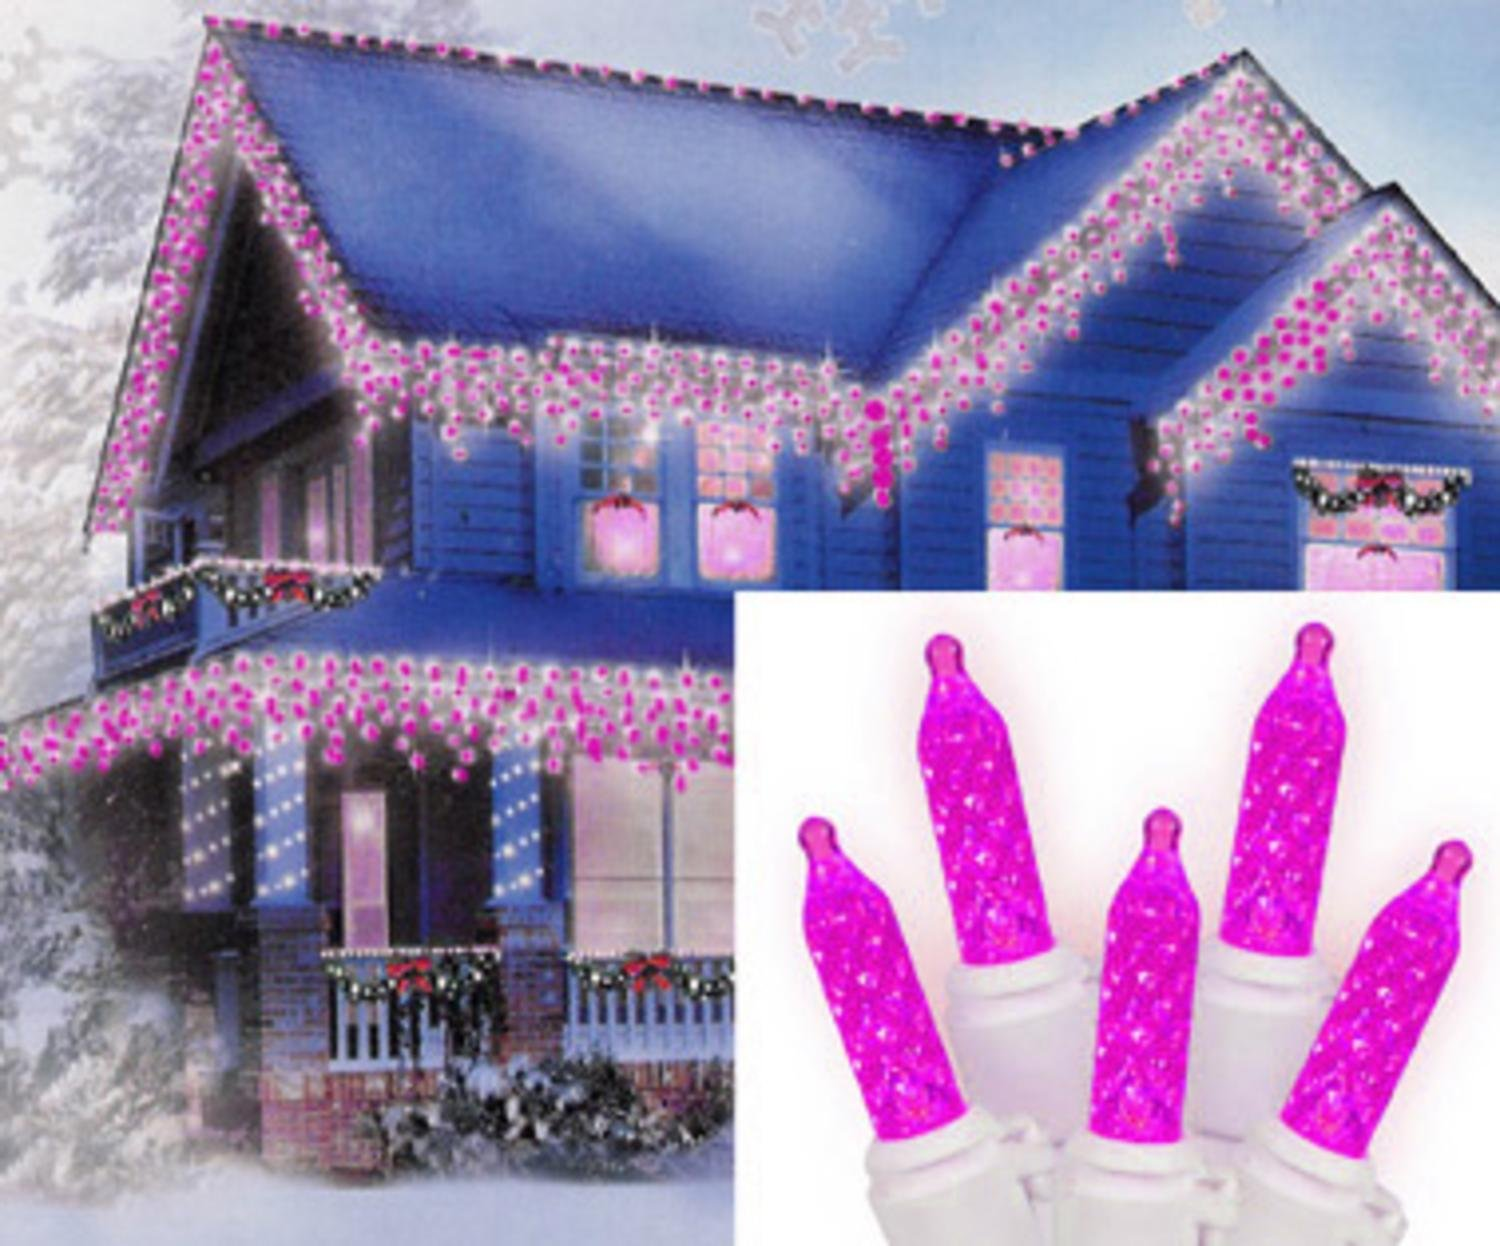 Sienna hot pink led m5 icicle christmas lights with white wire set sienna hot pink led m5 icicle christmas lights with white wire set of 70 amazon kitchen home aloadofball Images